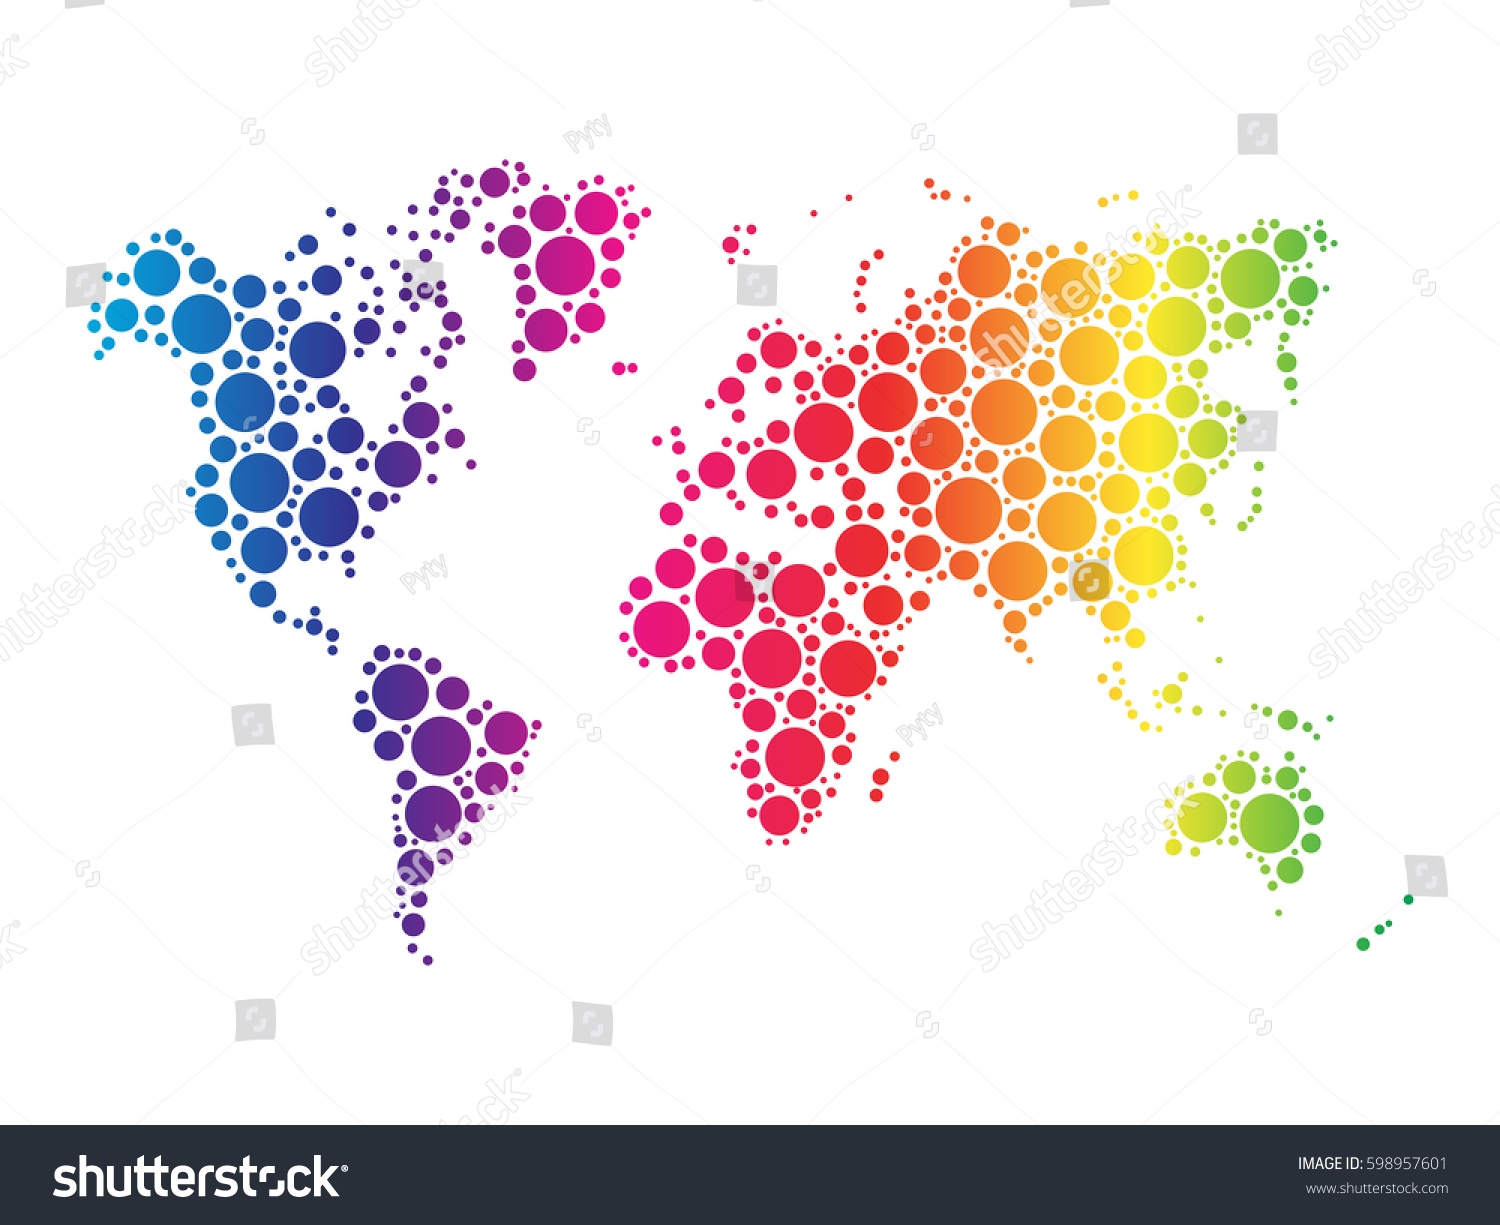 World map wallpaper mosaic dots rainbow stock vector 598957601 world map wallpaper mosaic of dots in rainbow spectrum colors on white background vector illustration gumiabroncs Gallery